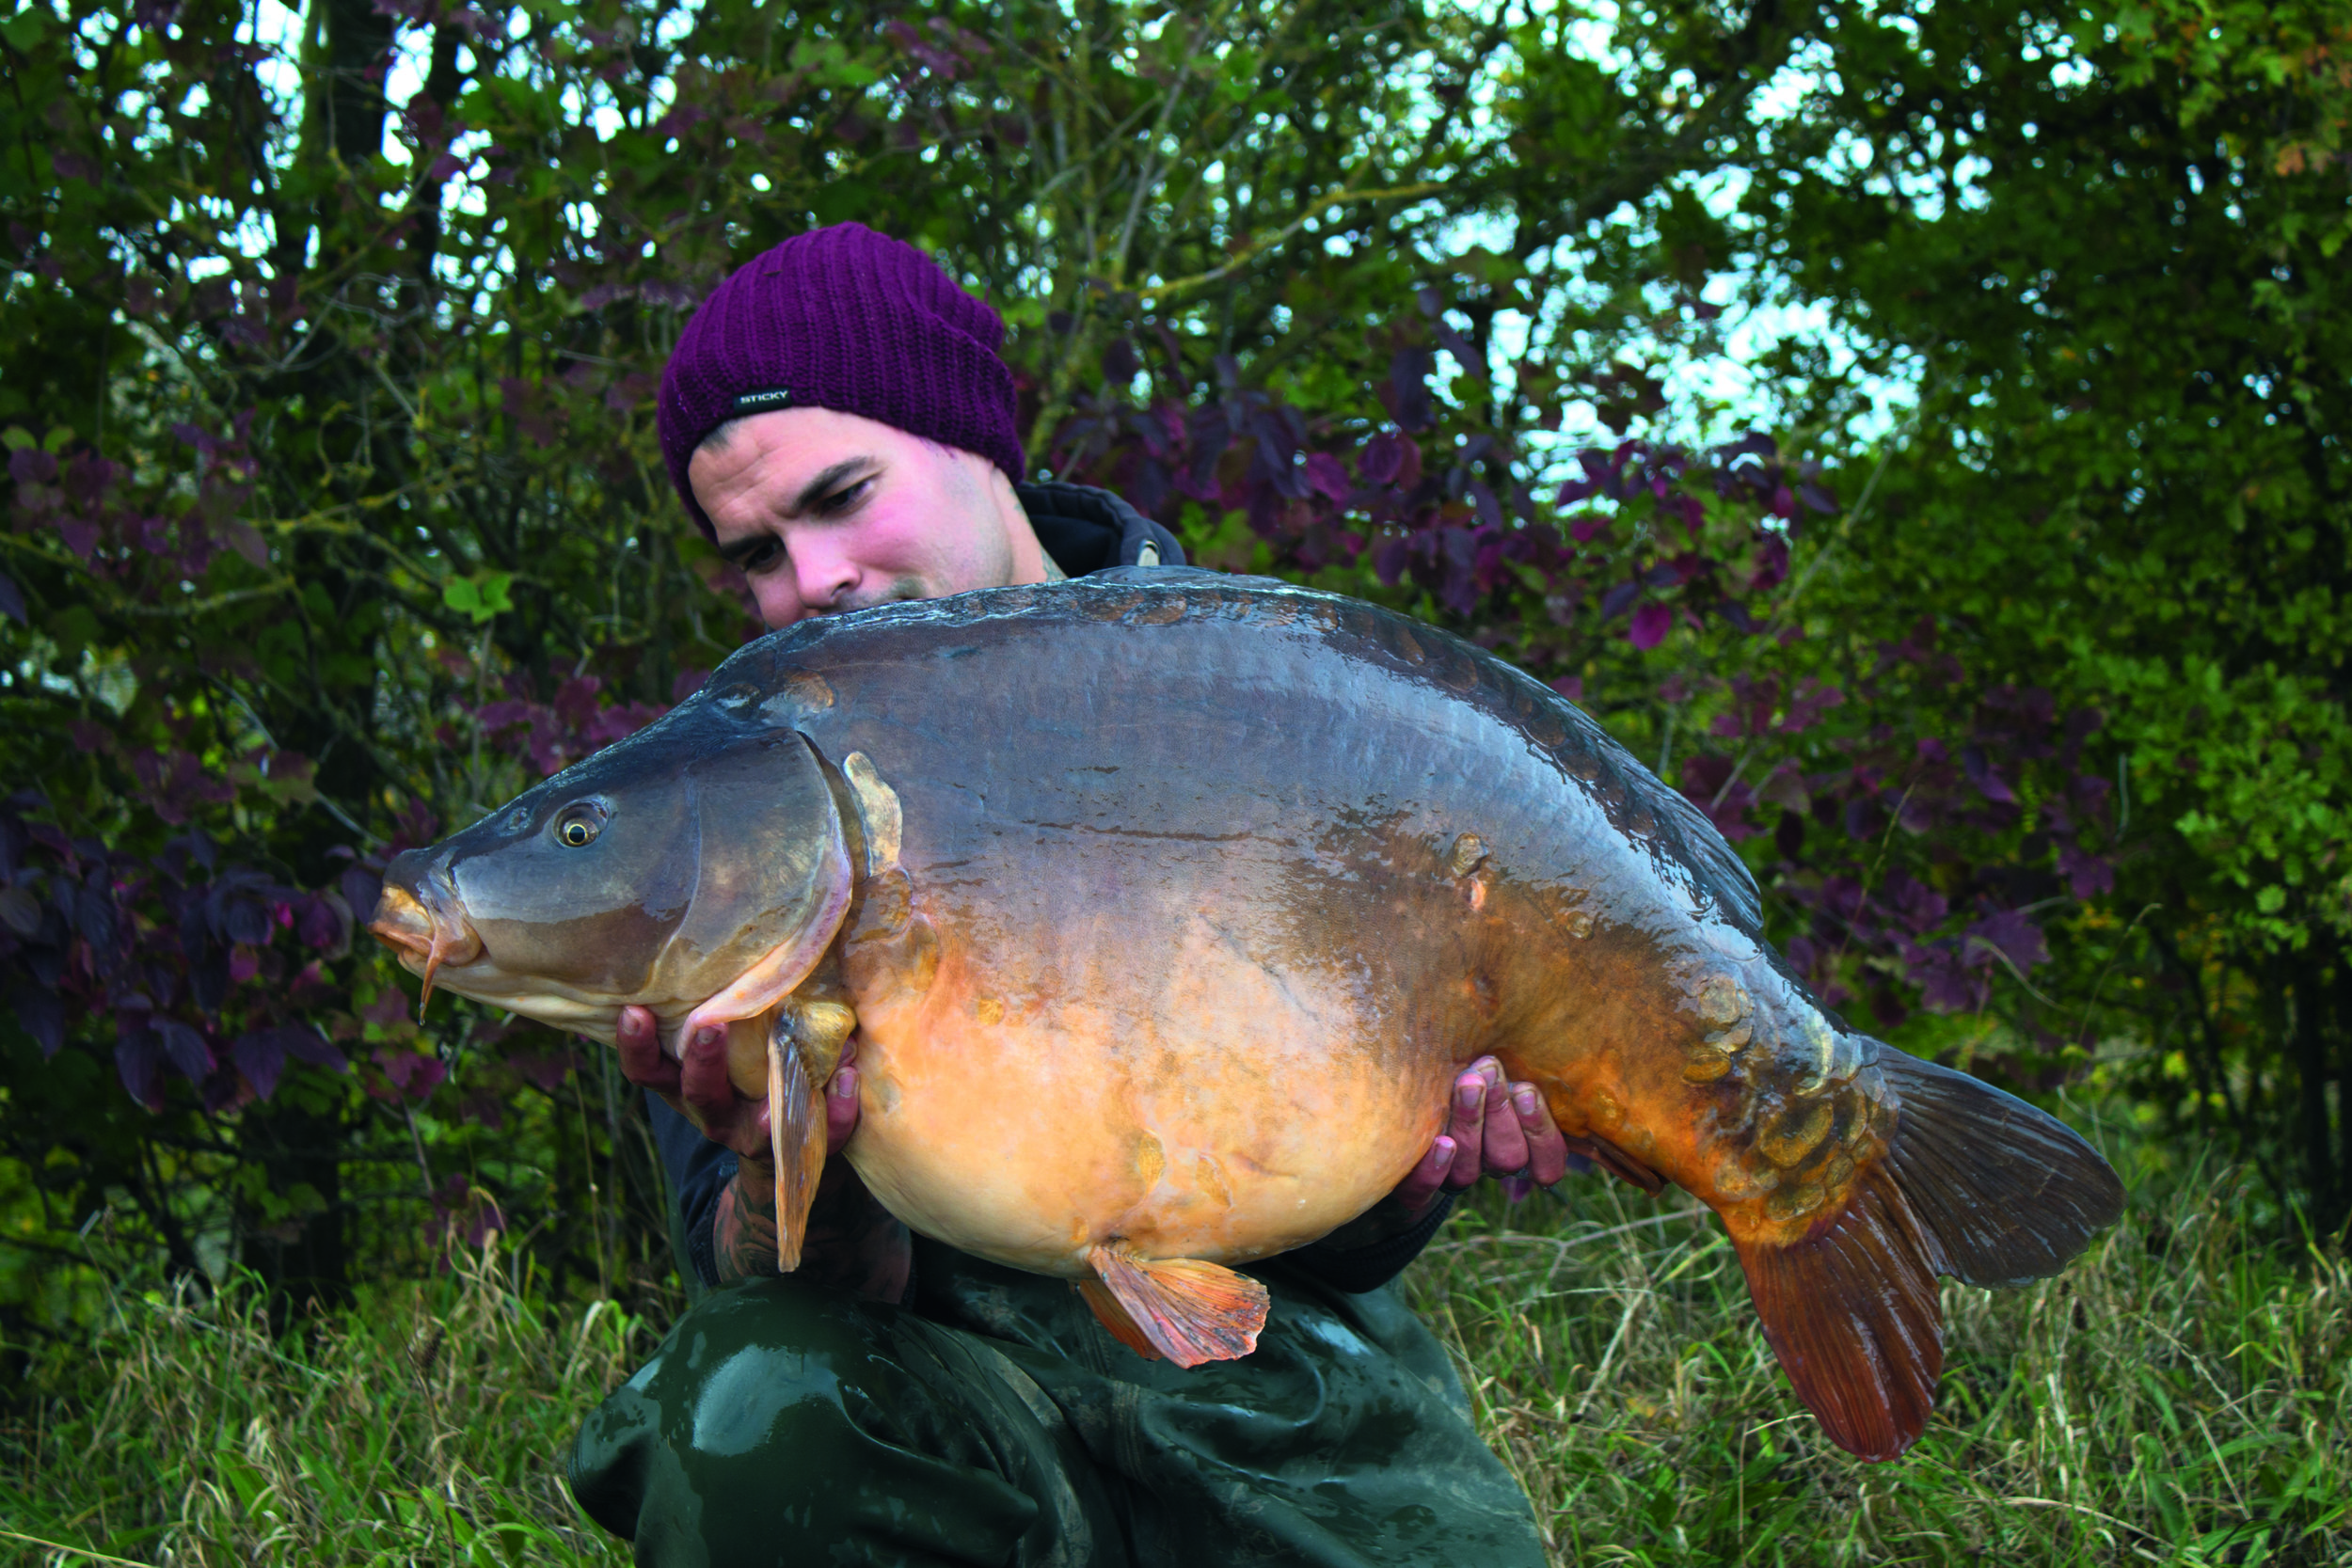 Another one of the lakes' big mirrors, the Peach at 47lb.